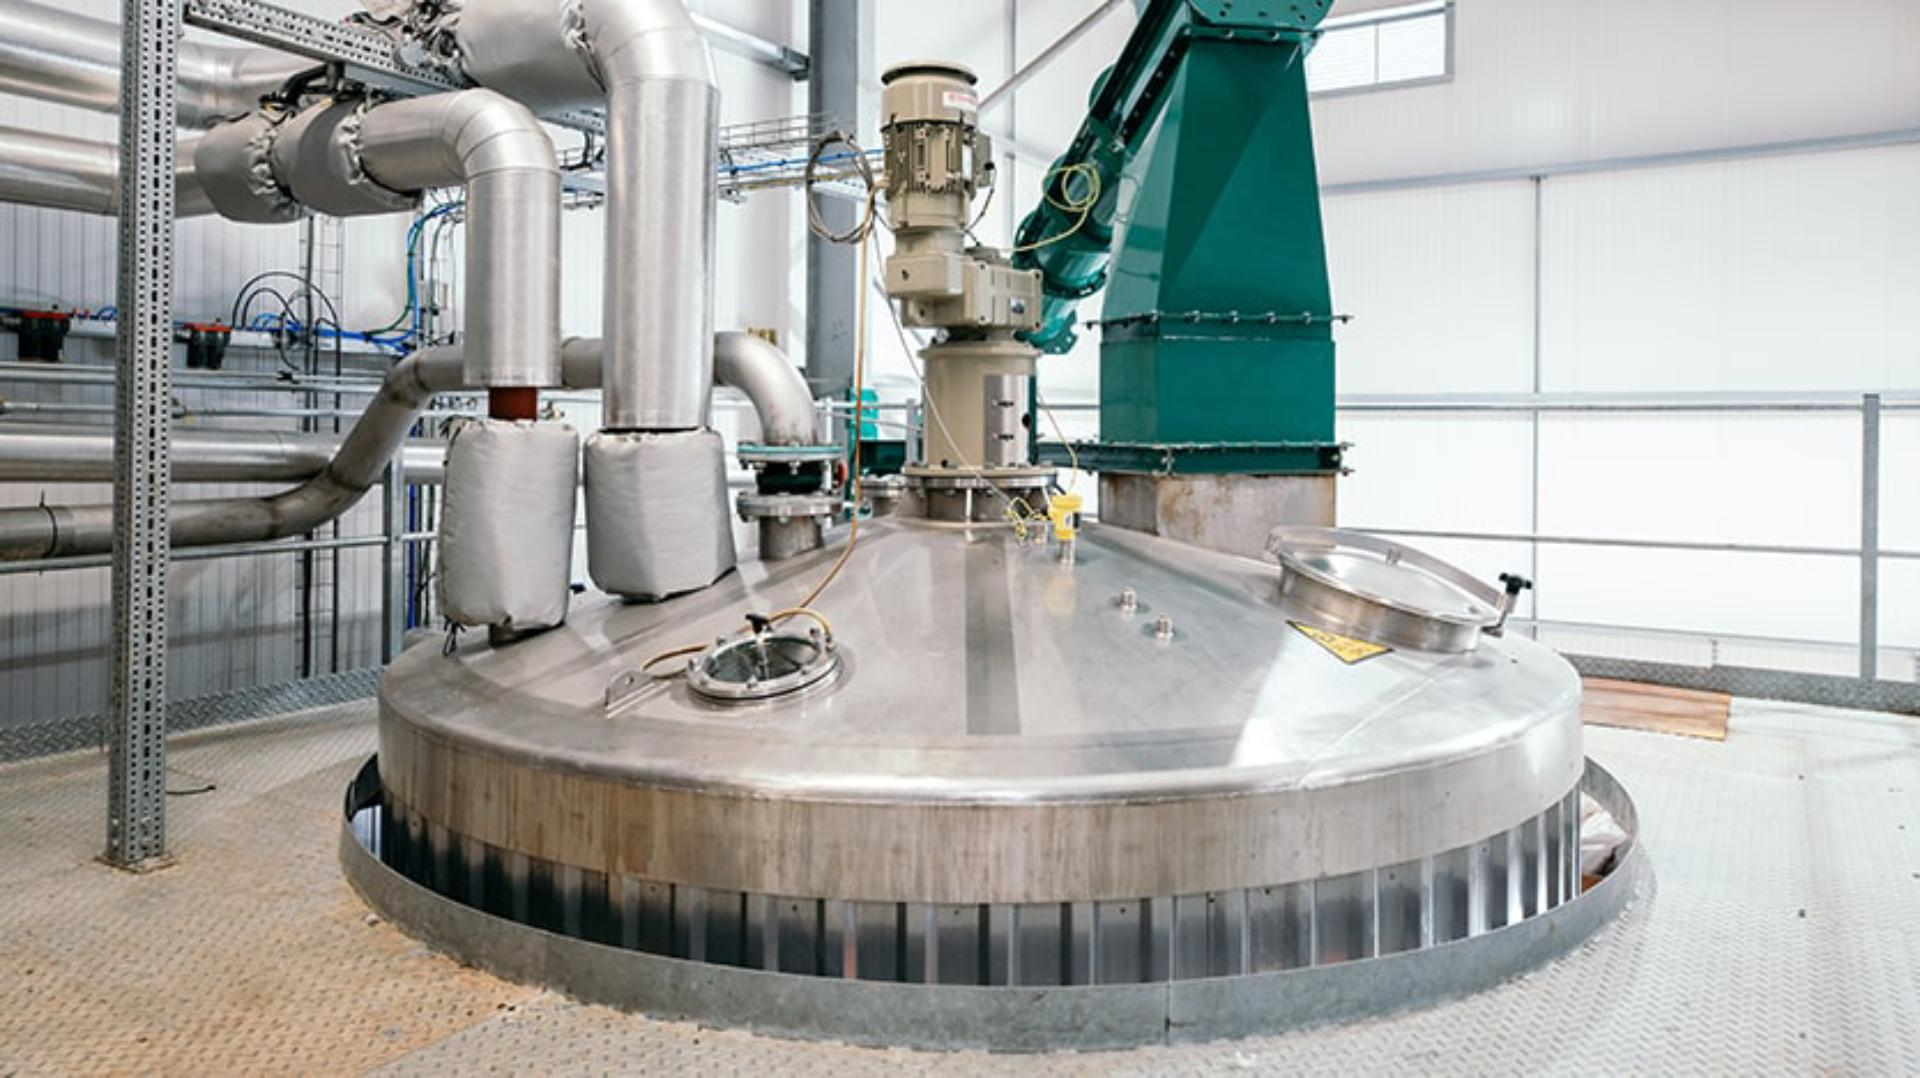 Interior view of the anaerobic digestor machinery